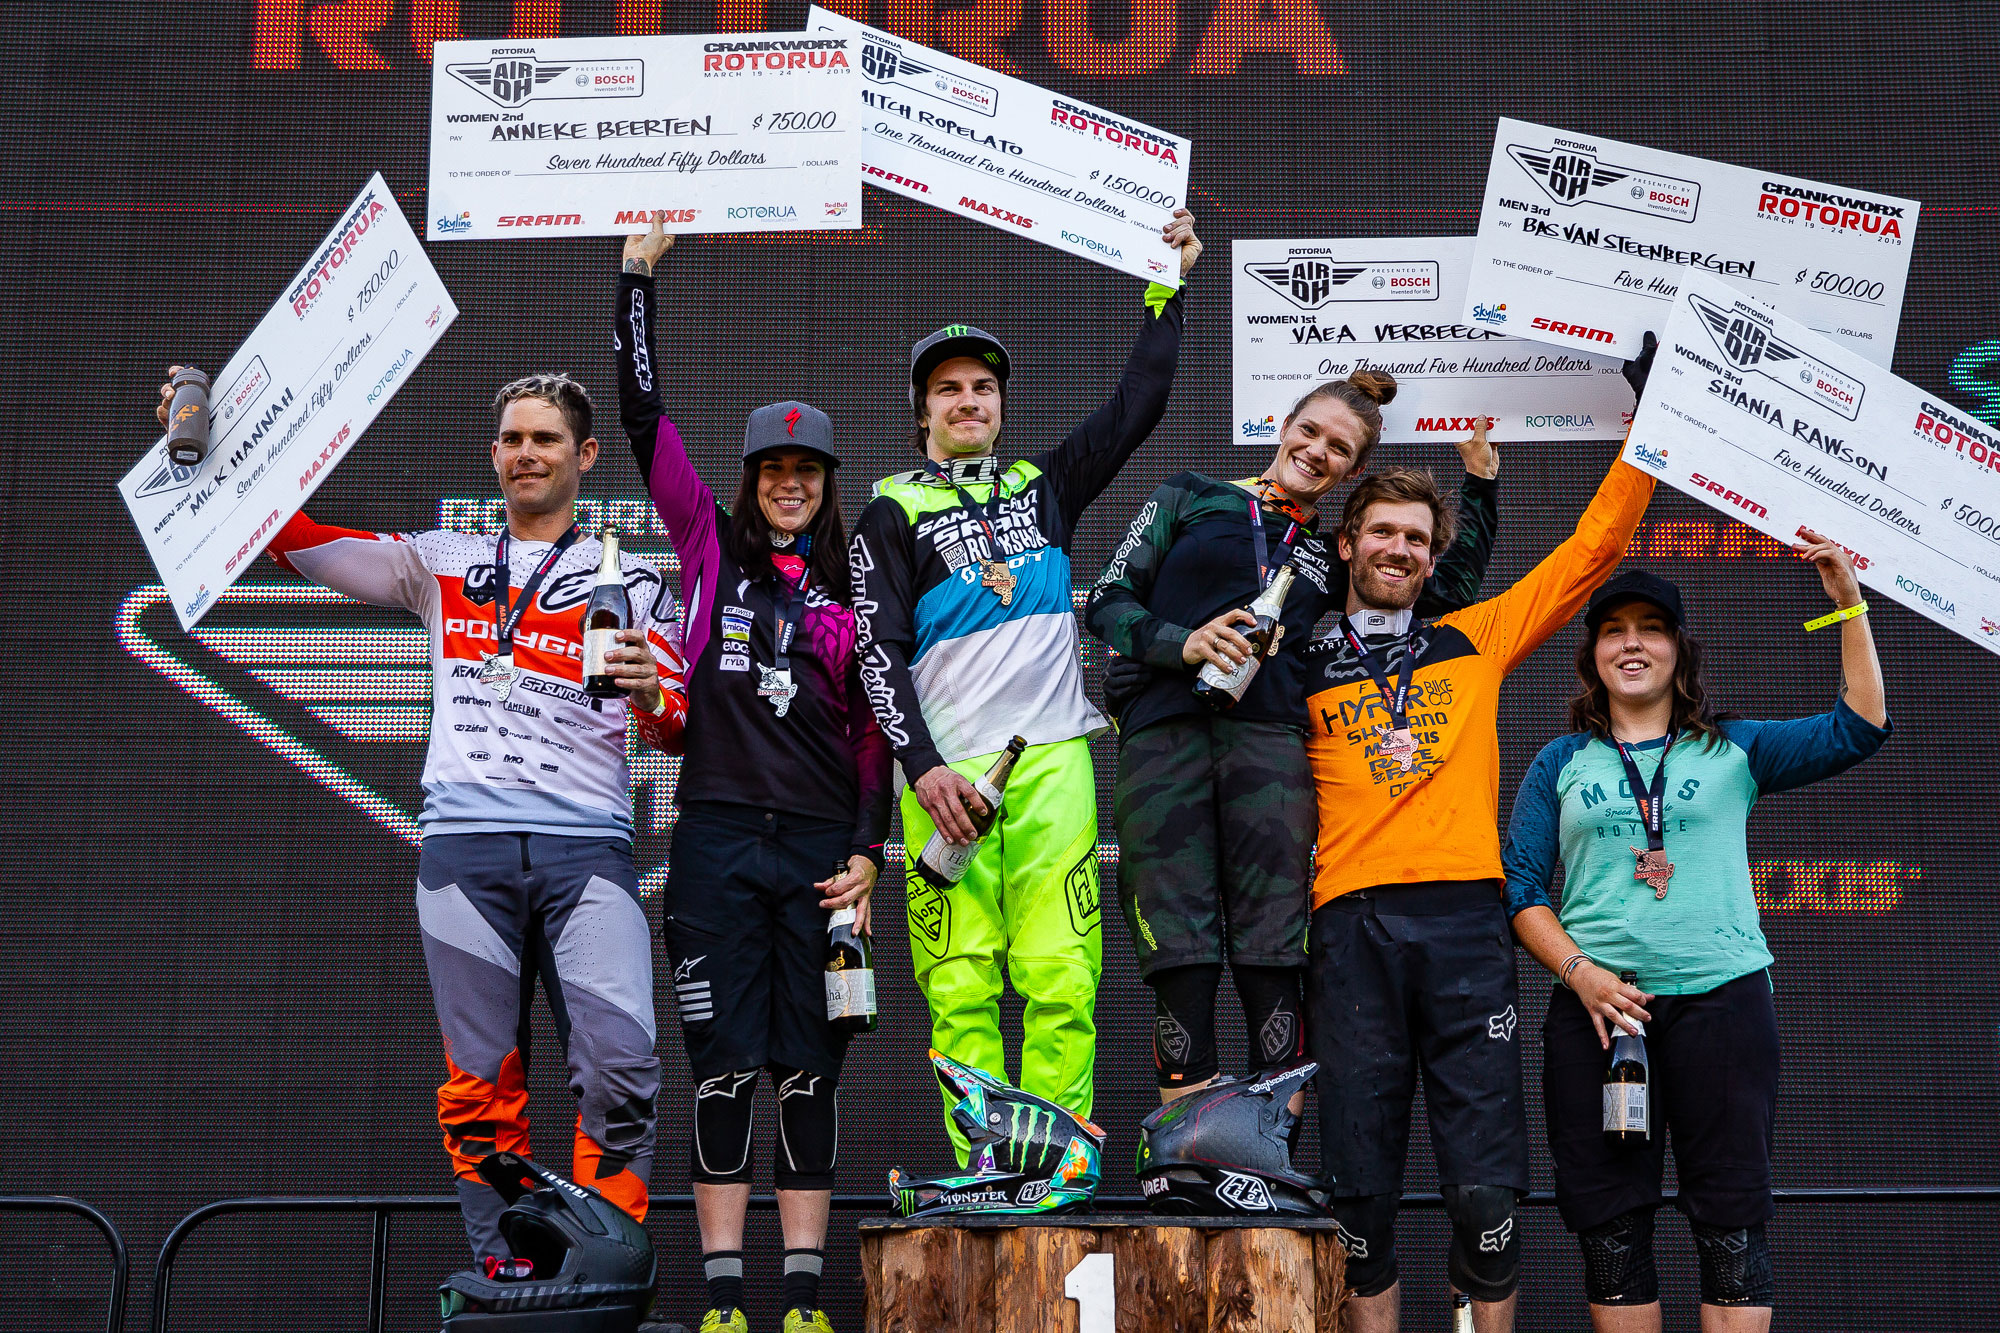 Rotorua Air DH presented by Bosch